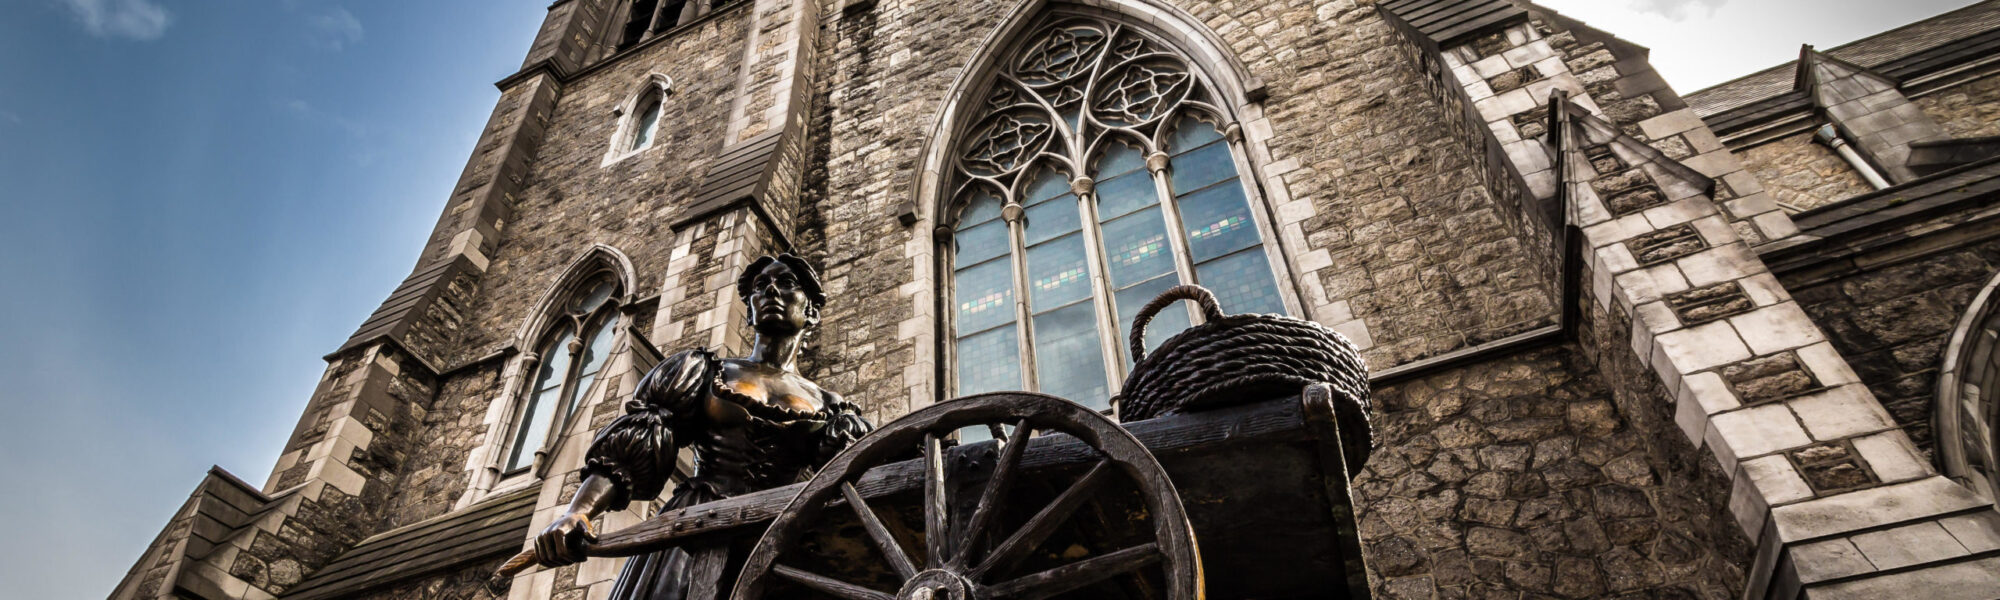 Statue of Molly Malone in Dublin - Fred Veenkamp - cc